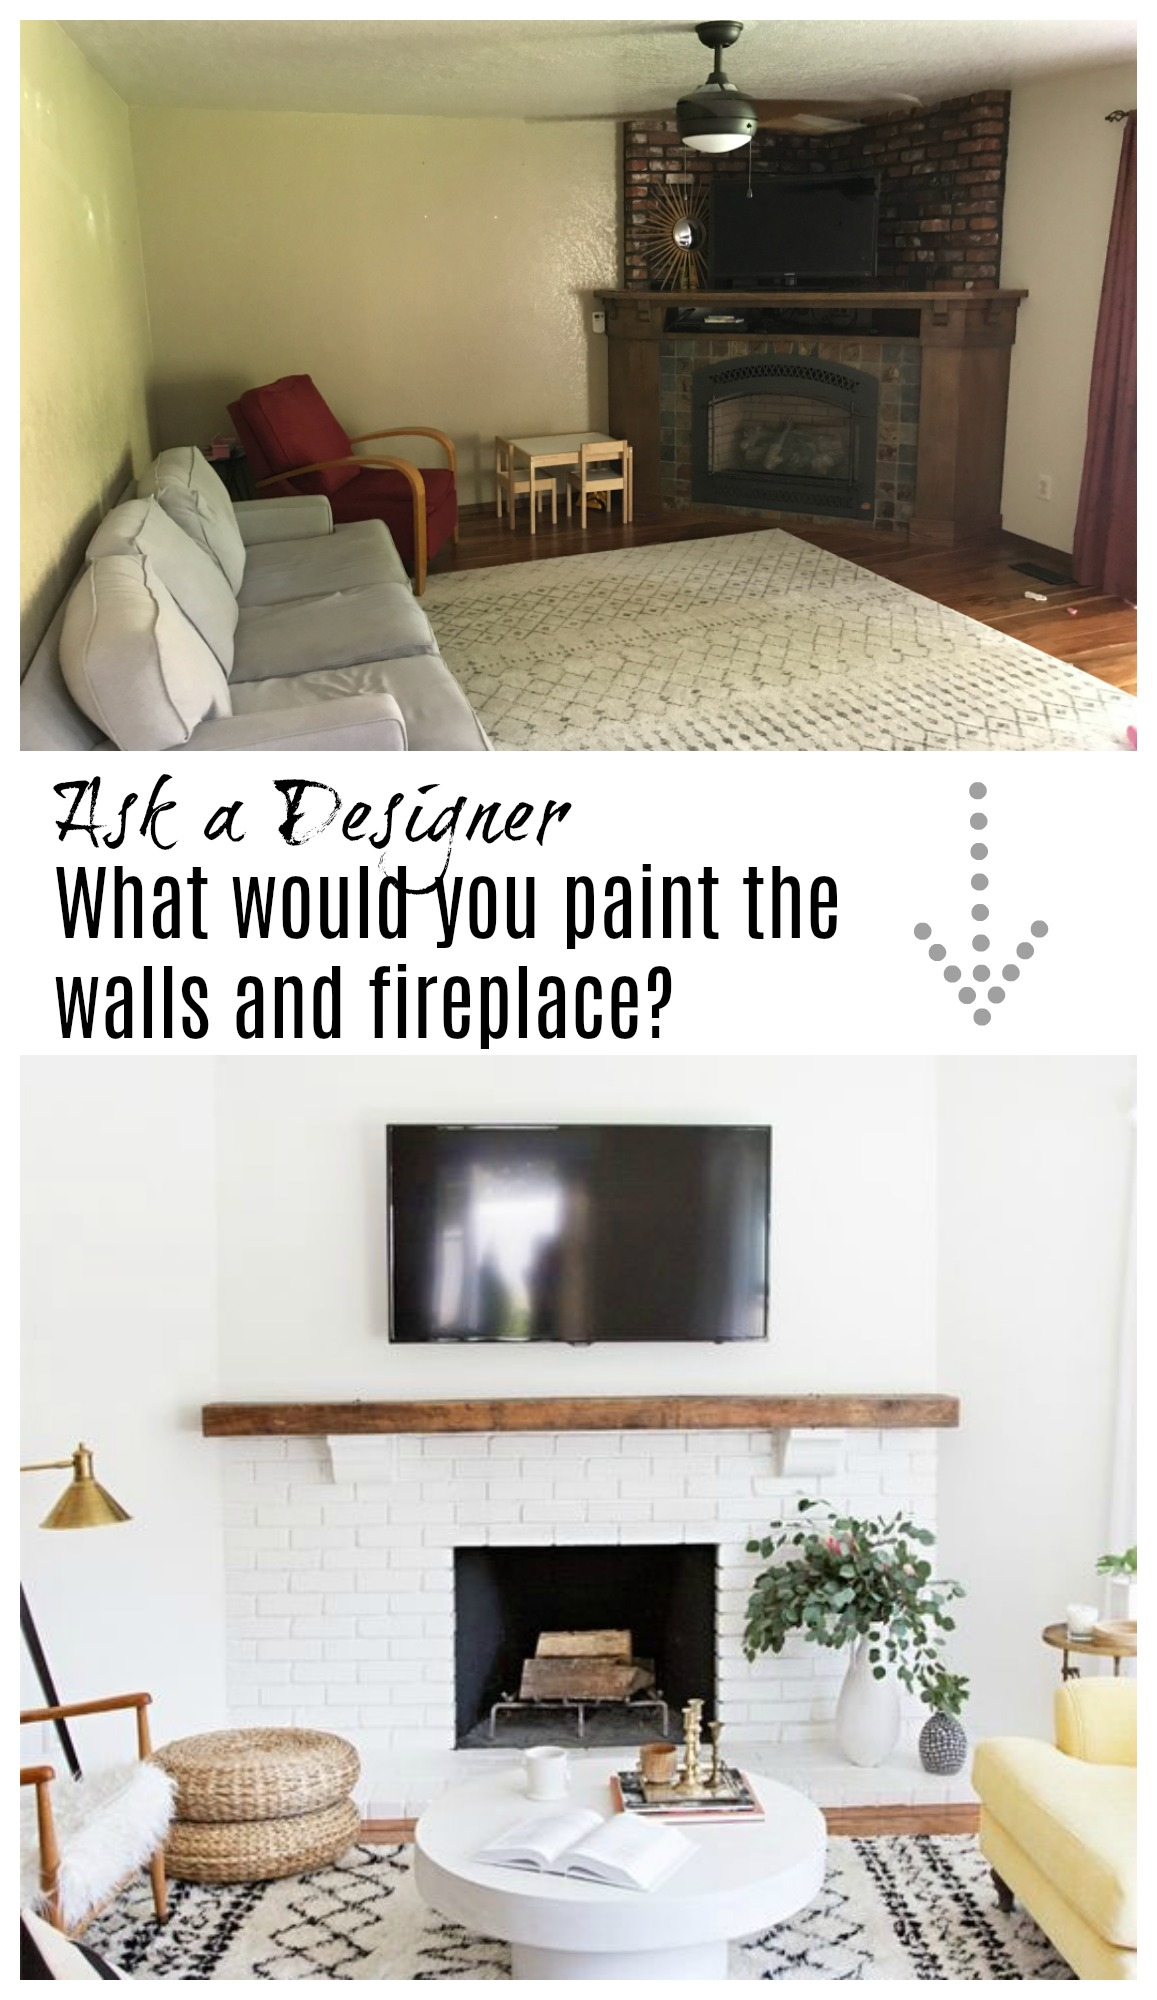 Ask a Designer- Help! What would you paint the walls and fireplace?